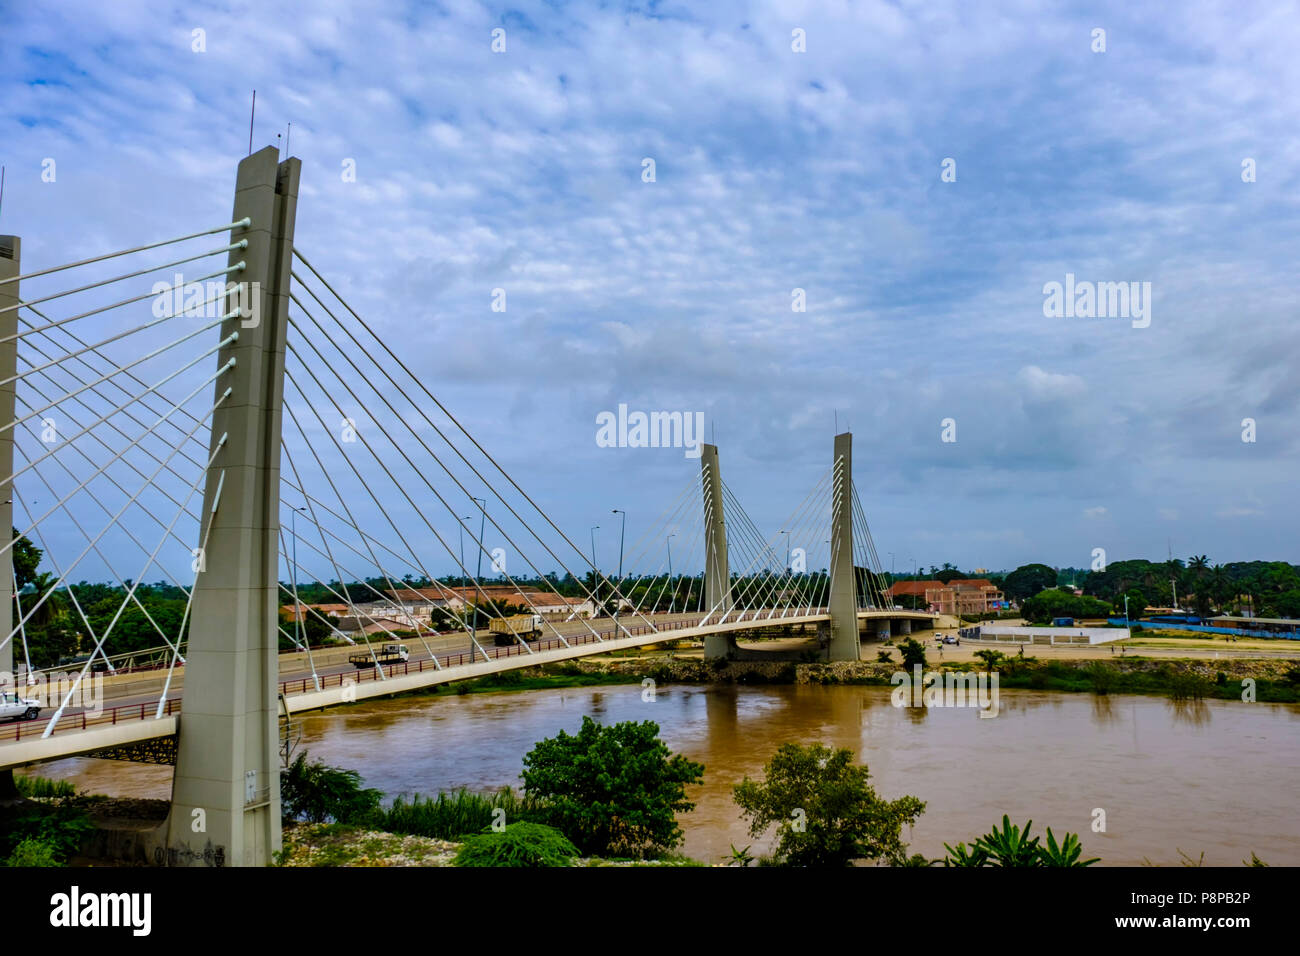 Modern suspension Bridge, 4 April, over Catumbela River links cities of Benguela and Lobito in Angola - Stock Image